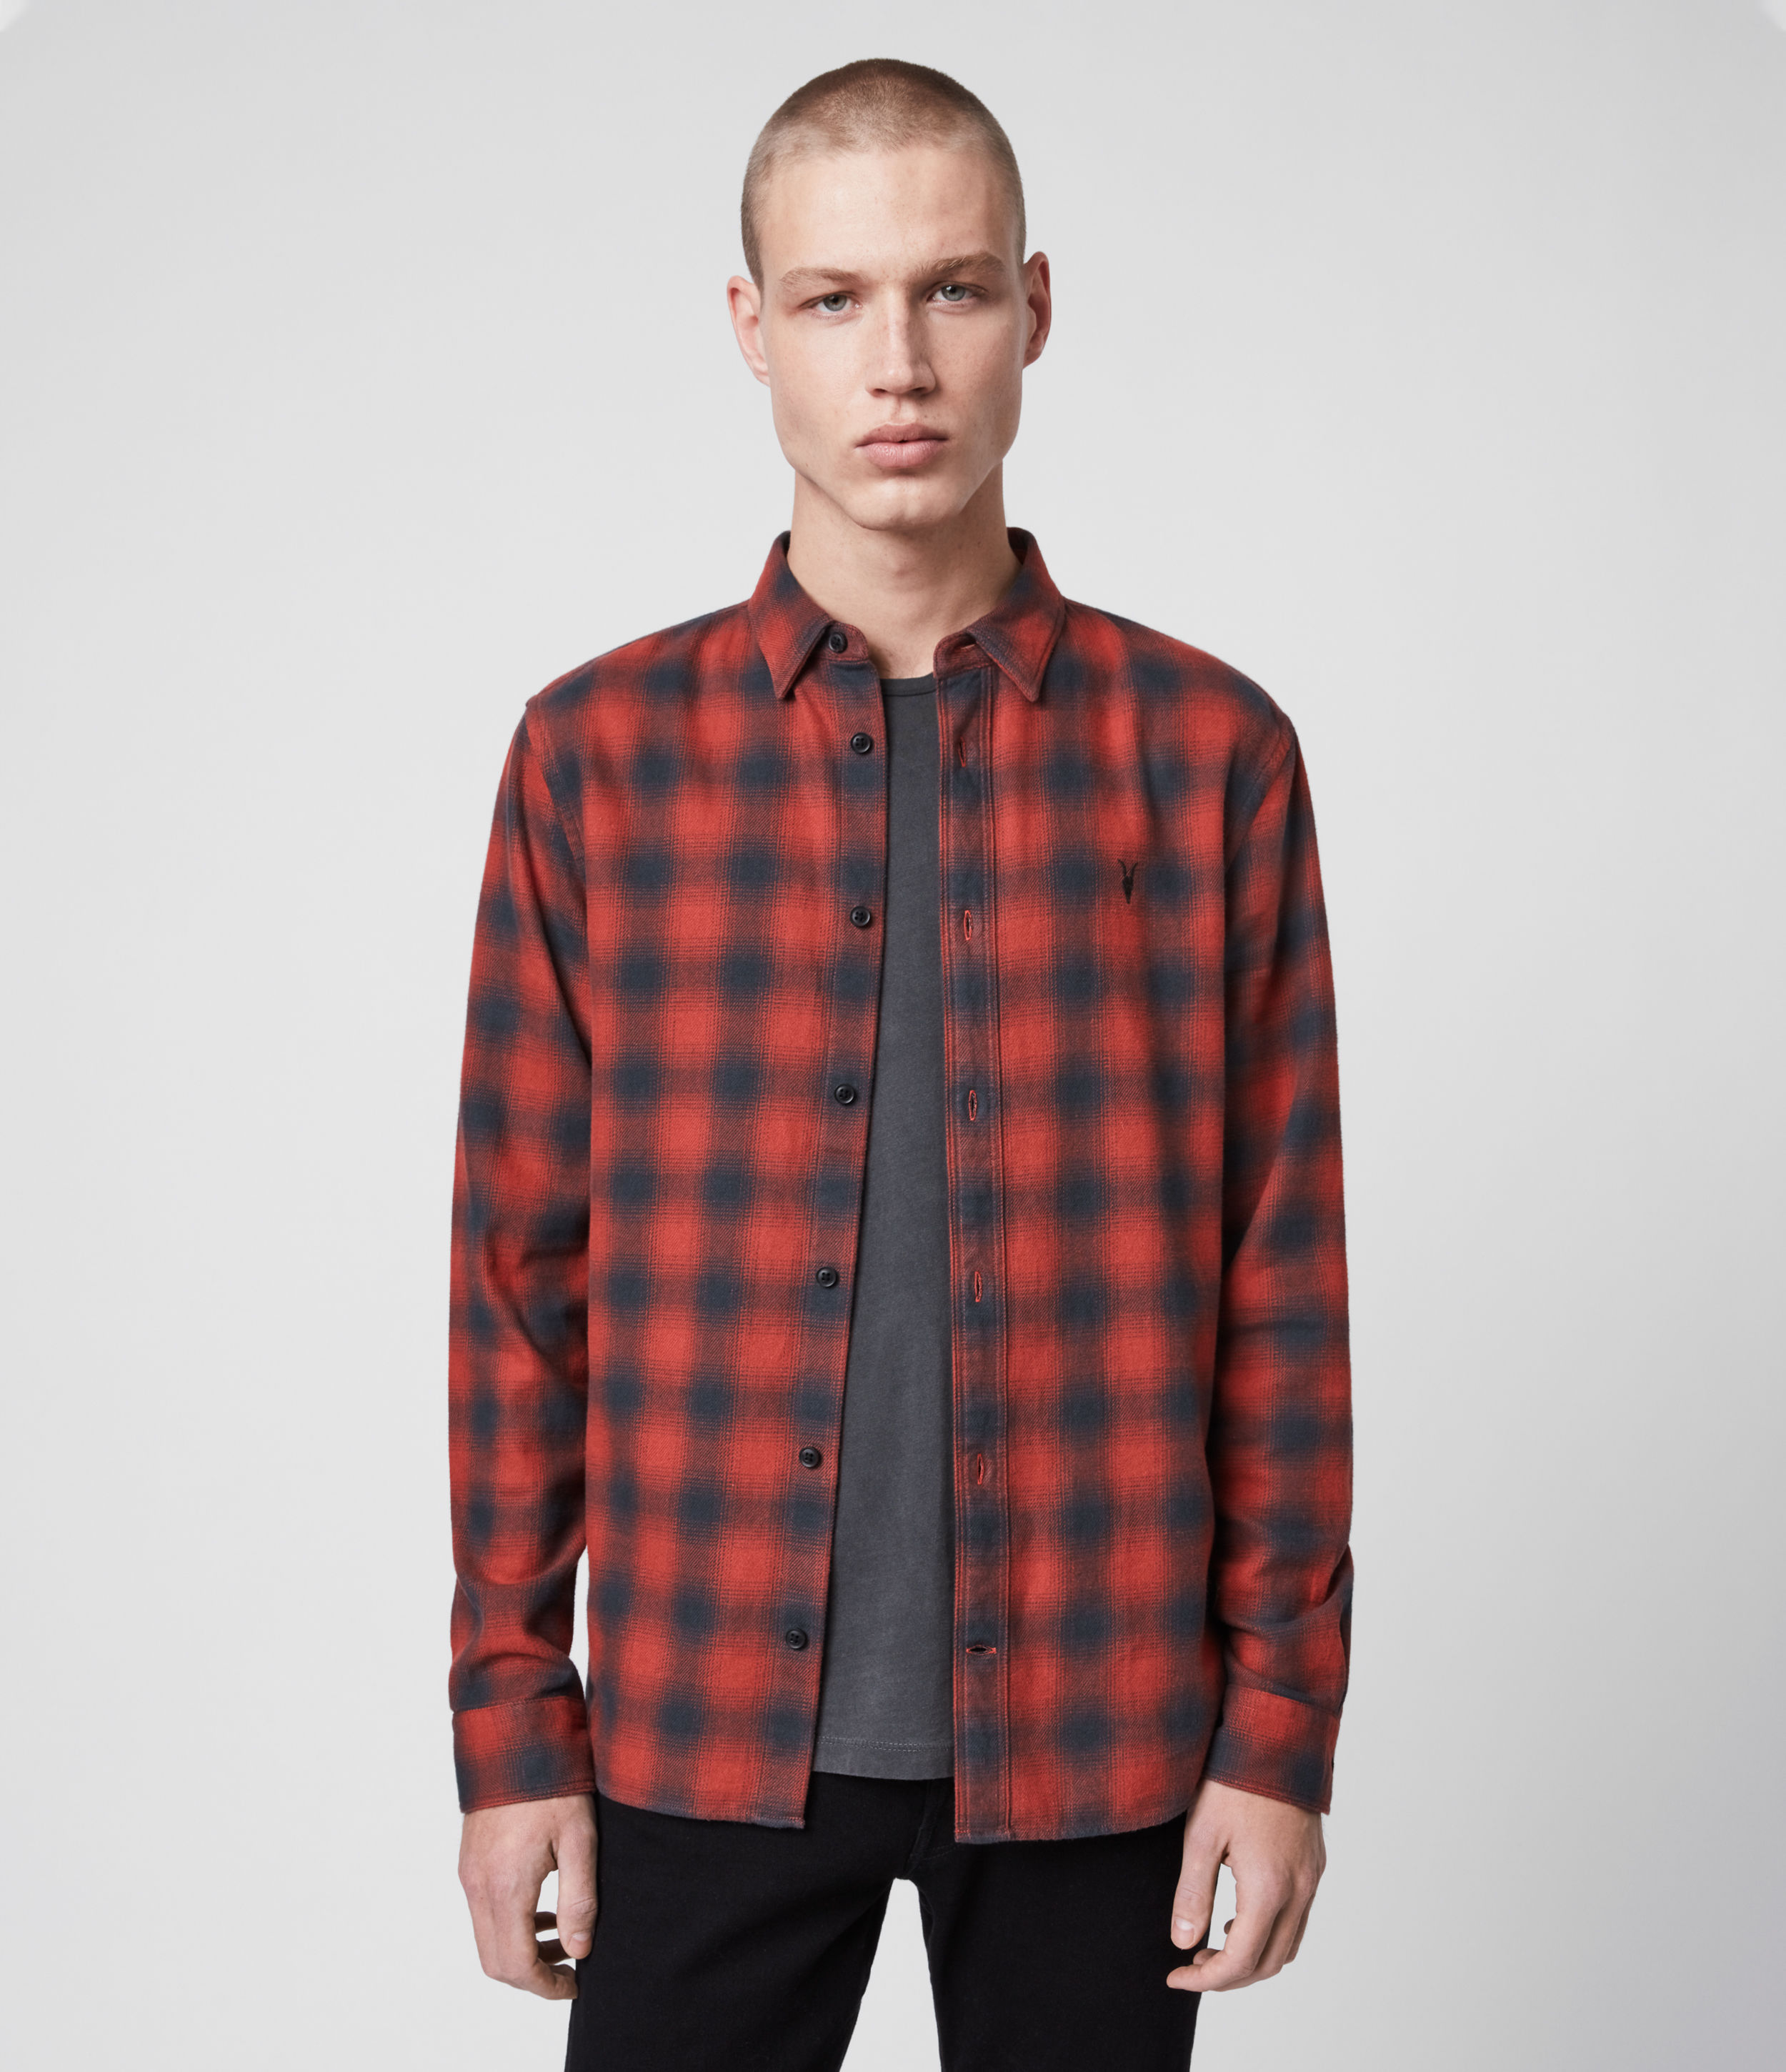 AllSaints Men's Cotton Check Slim Fit Catalpa Shirt, Red and Blue, Size: M